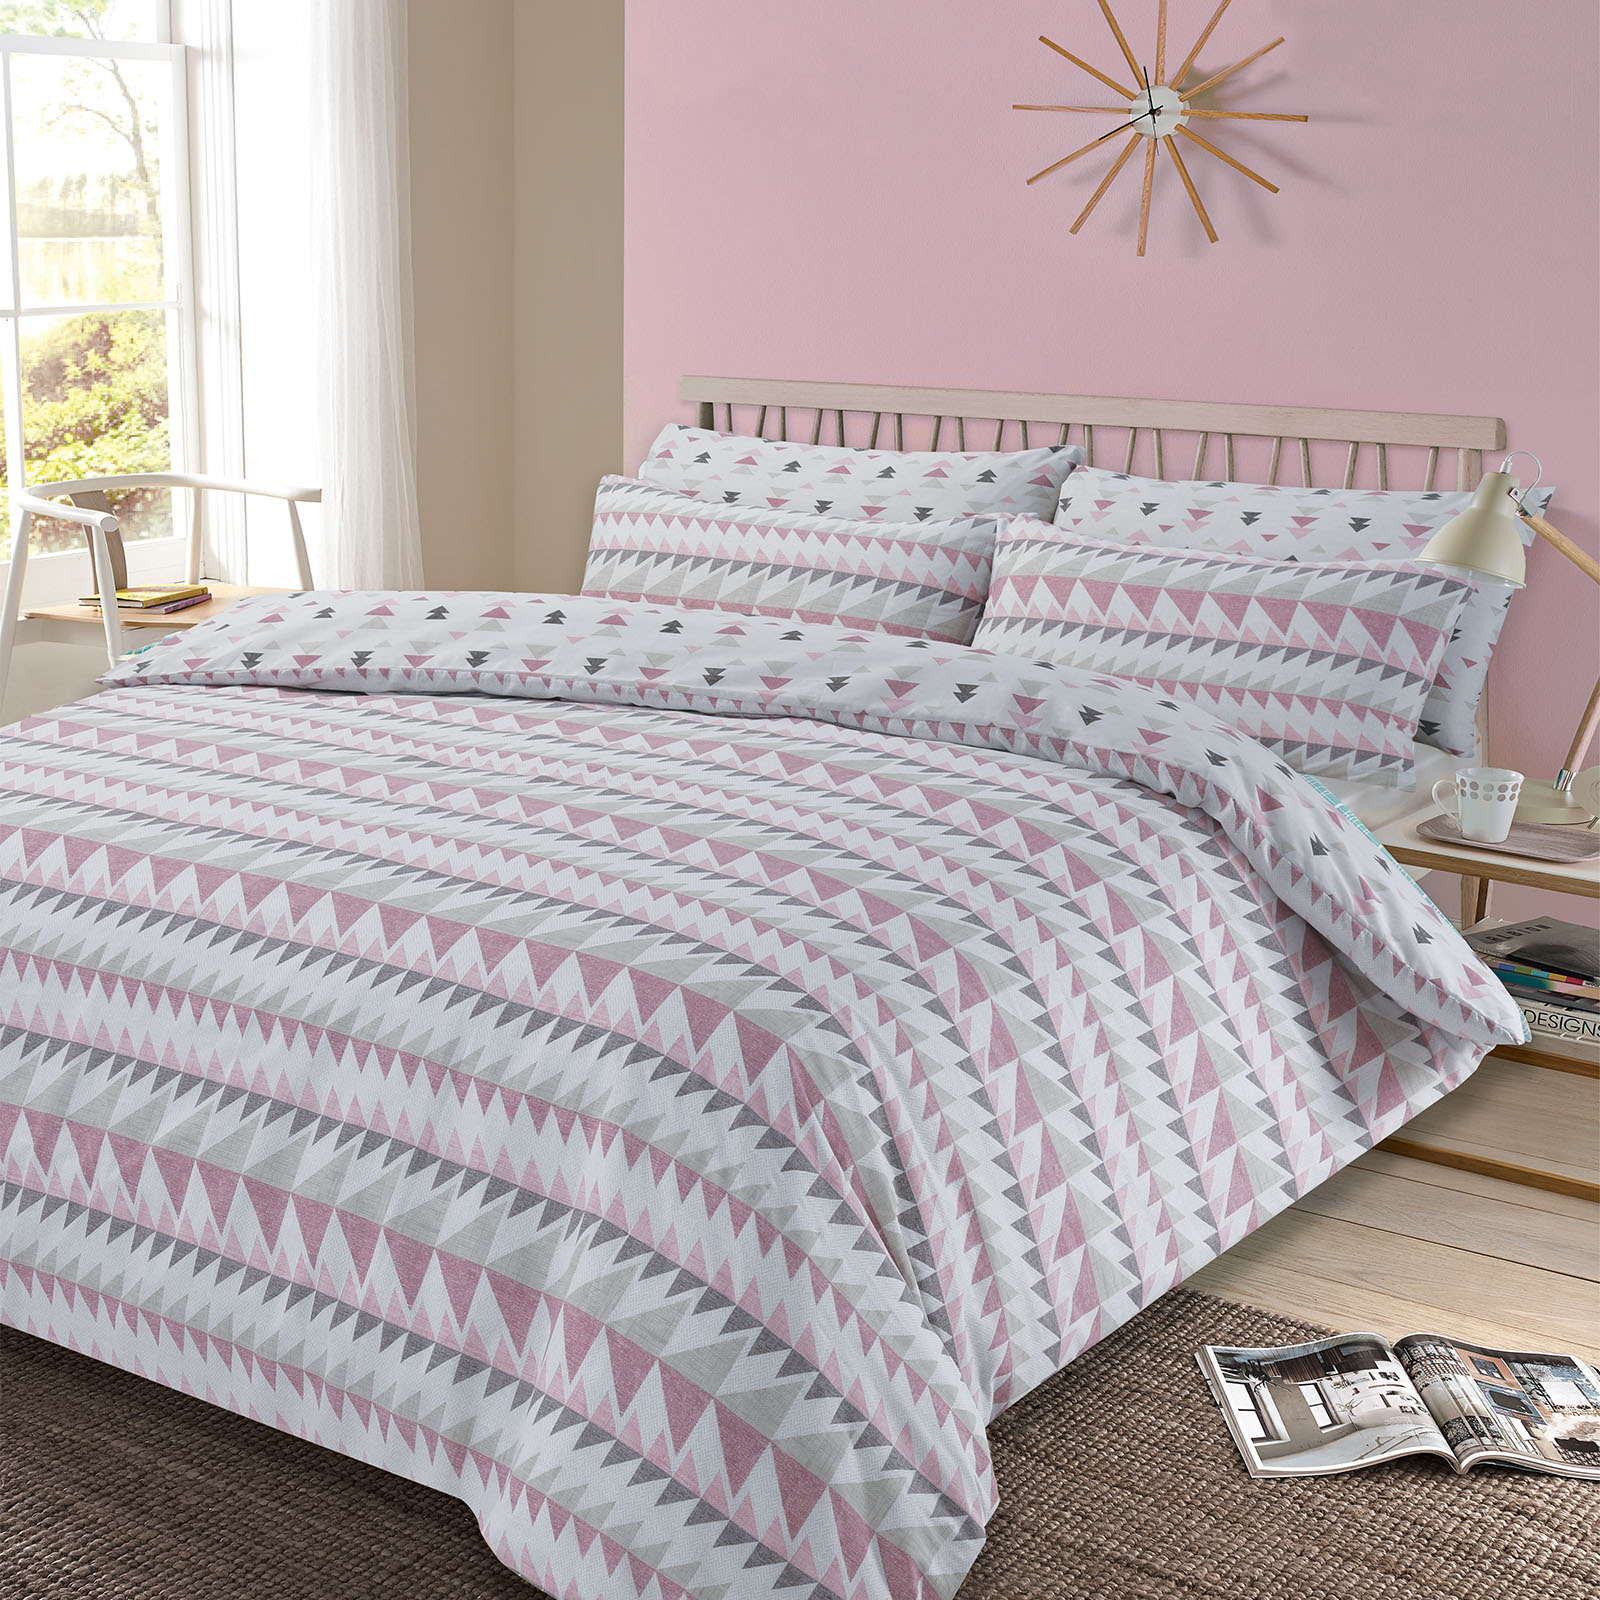 dreamscene premium polycotton duvet cover with pillowcase bedding  - dreamscenepremiumpolycottonduvetcoverwithpillowcasebedding